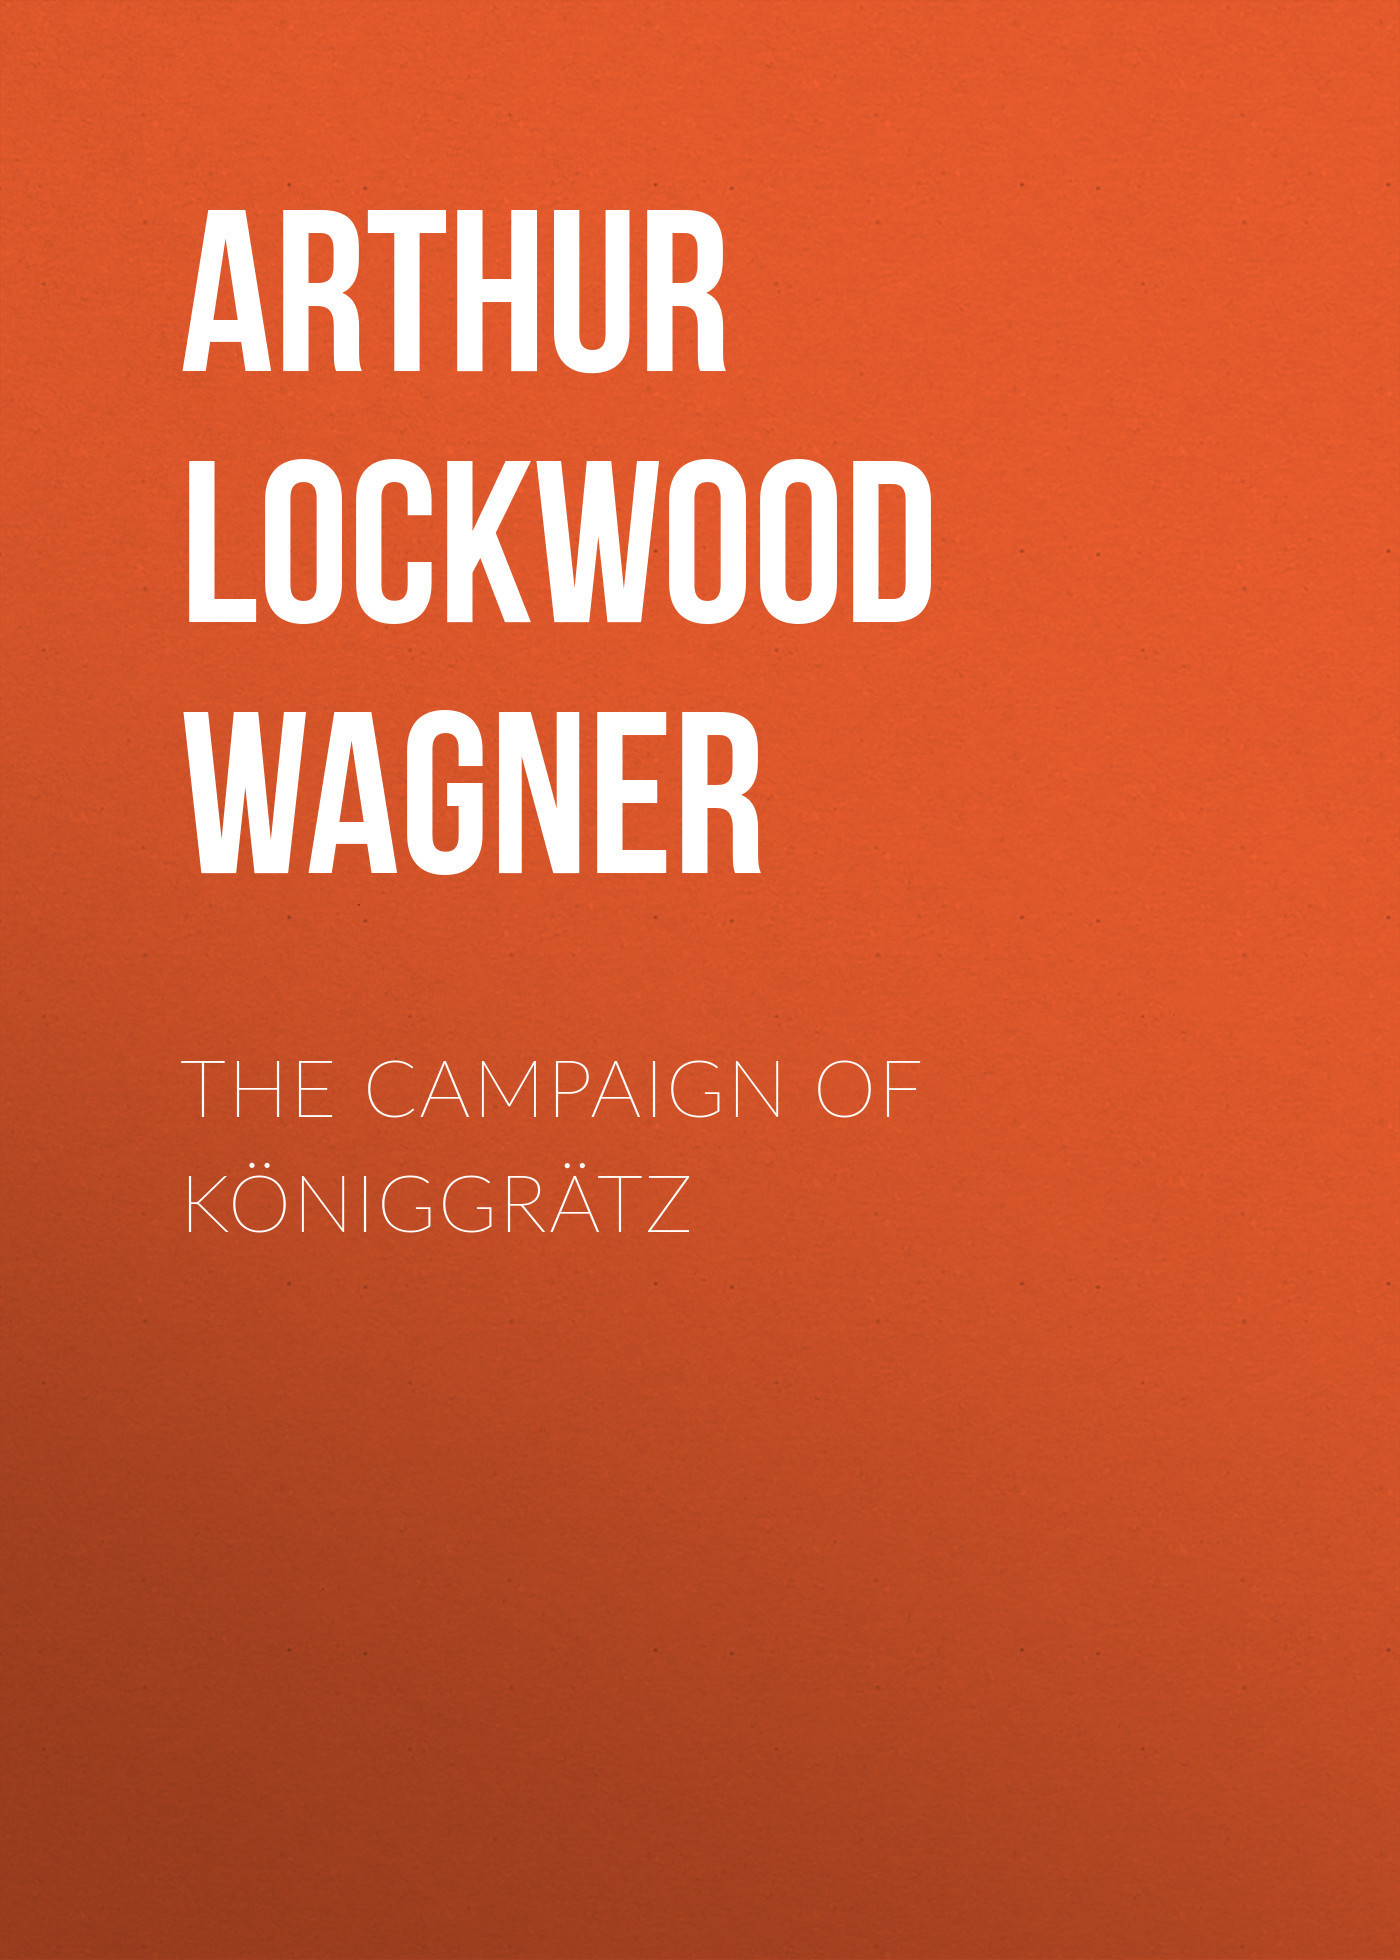 Arthur Lockwood Wagner The Campaign of Königgrätz